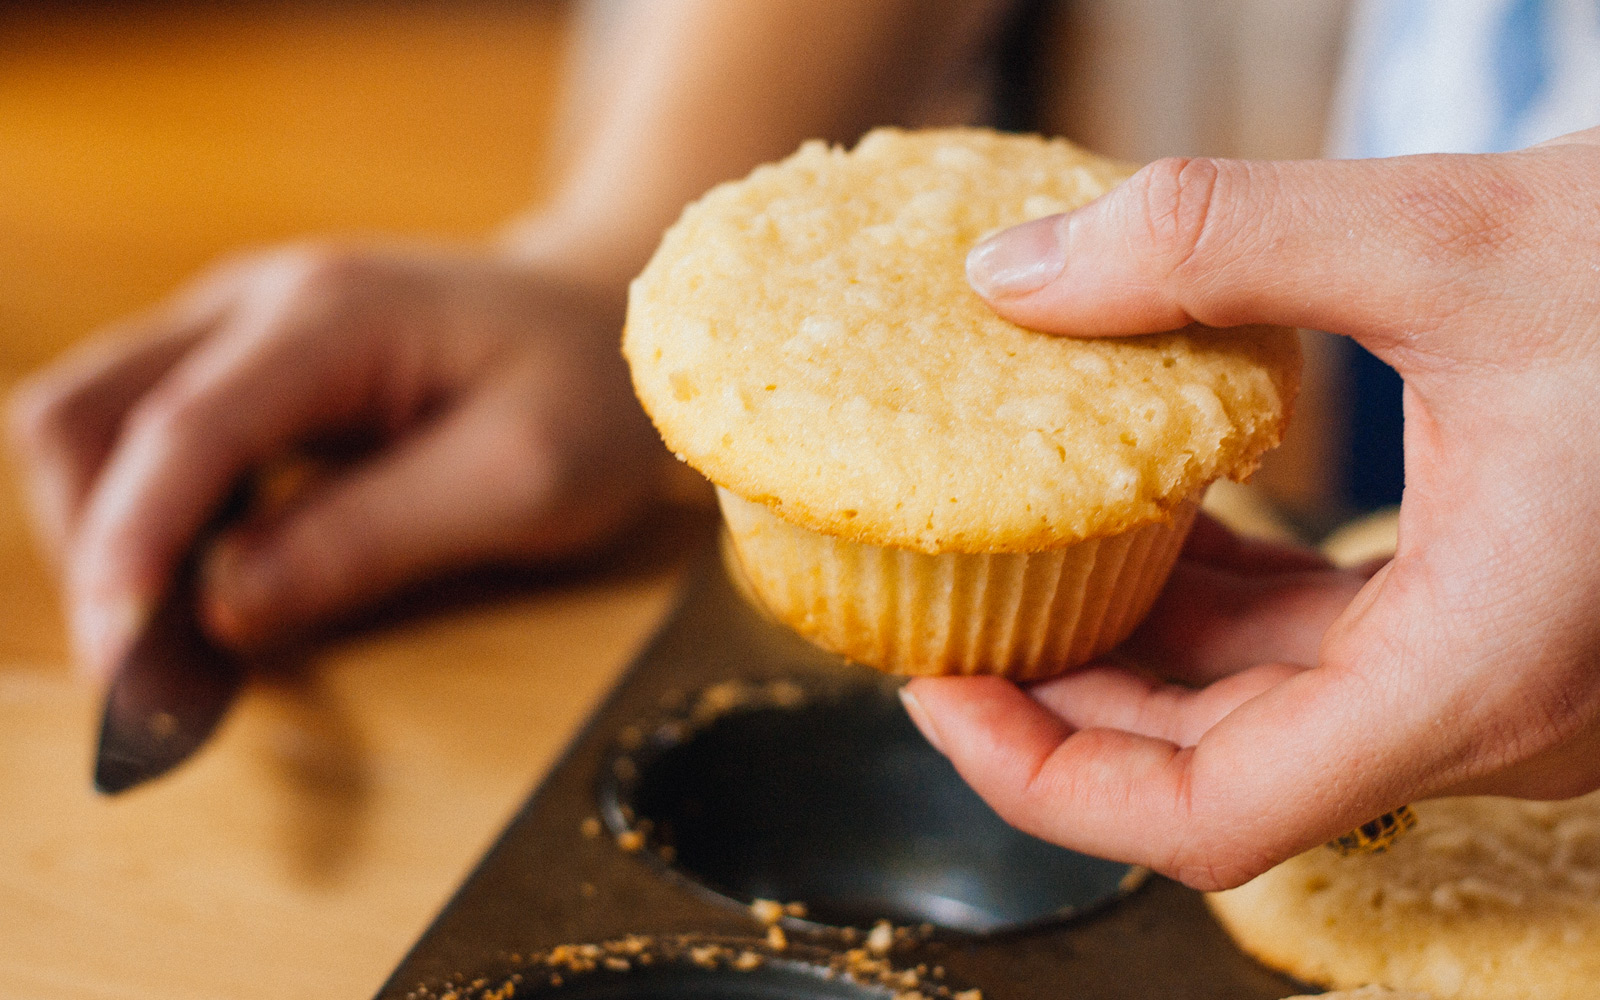 bake the coconut cupcakes